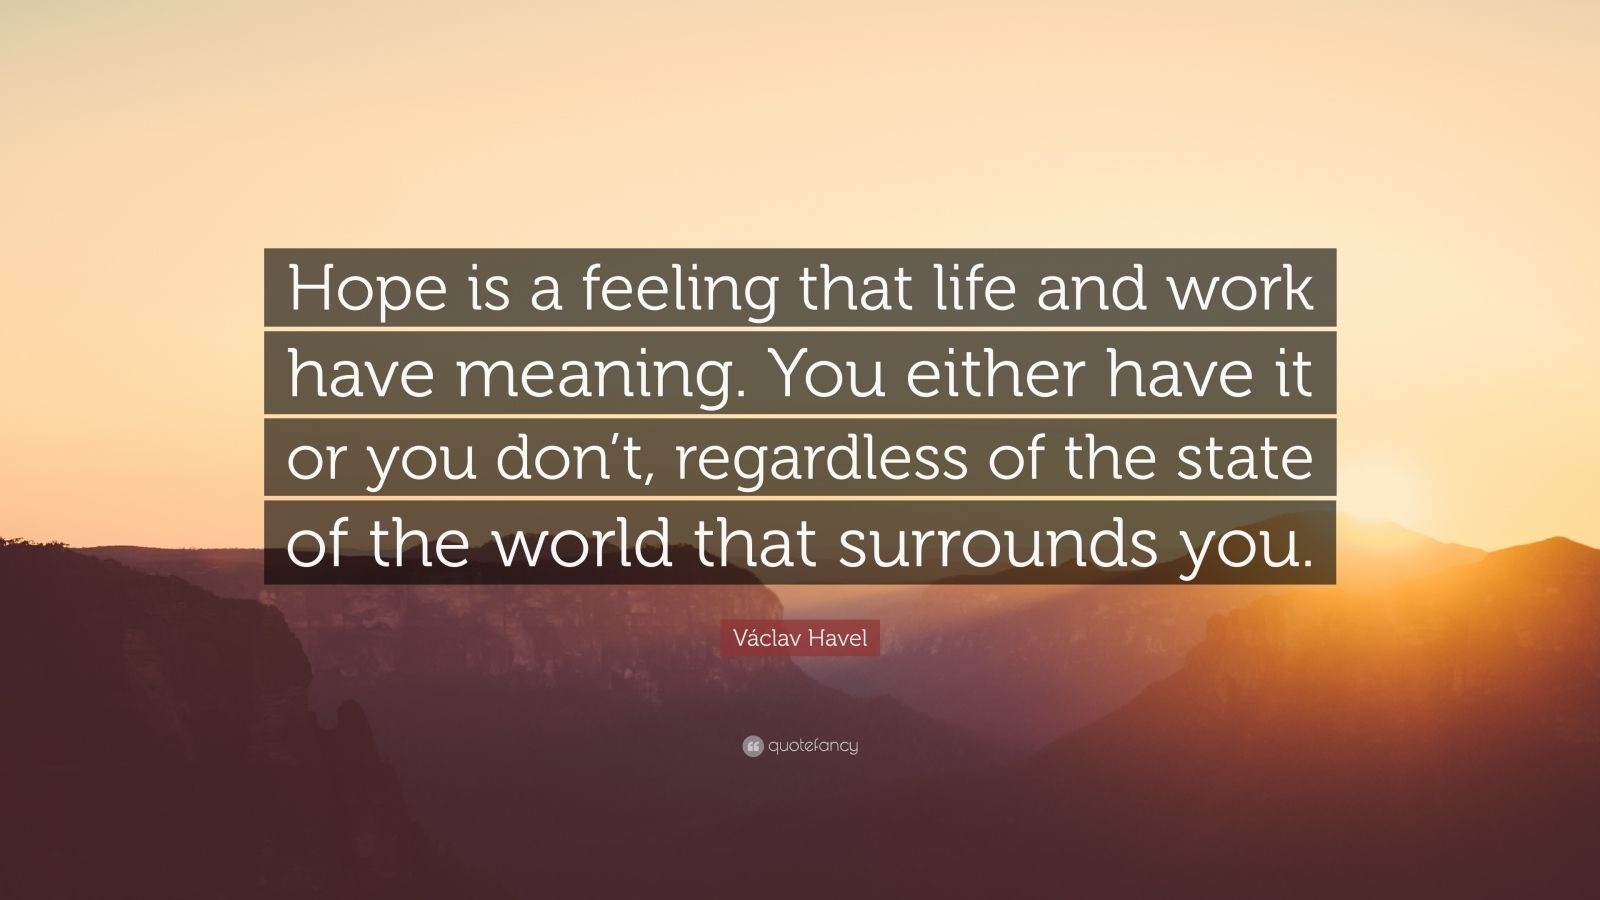 """Václav Havel Quote: """"Hope is a feeling that life and work have meaning. You either have it or you don't, regardless of the state of the world that surrounds you."""""""